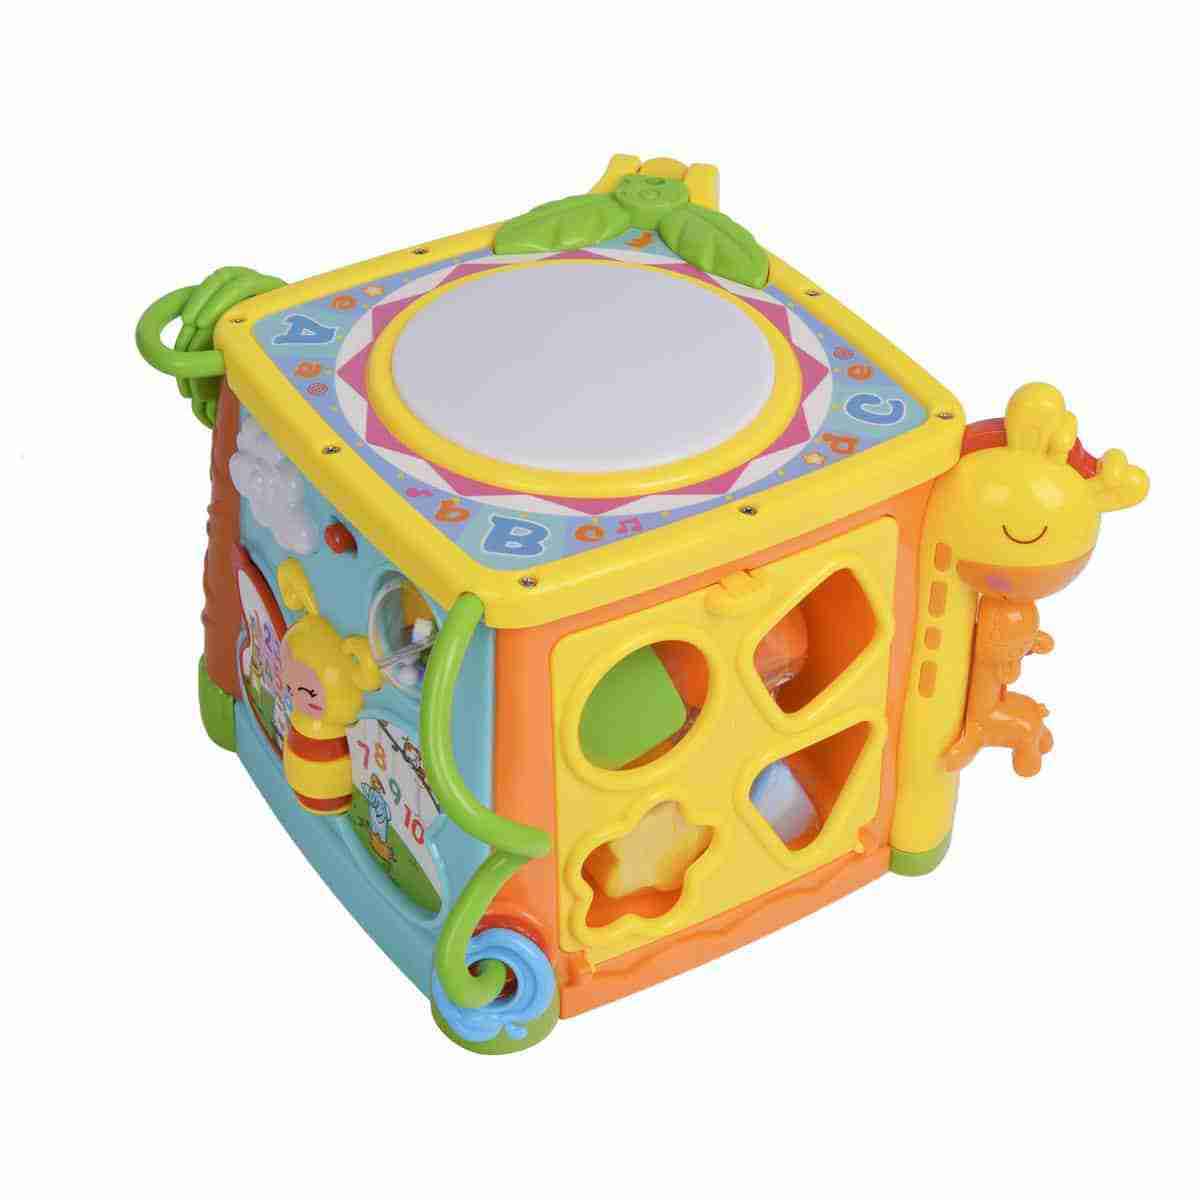 A small drum on the top helps develop your gross motor skills